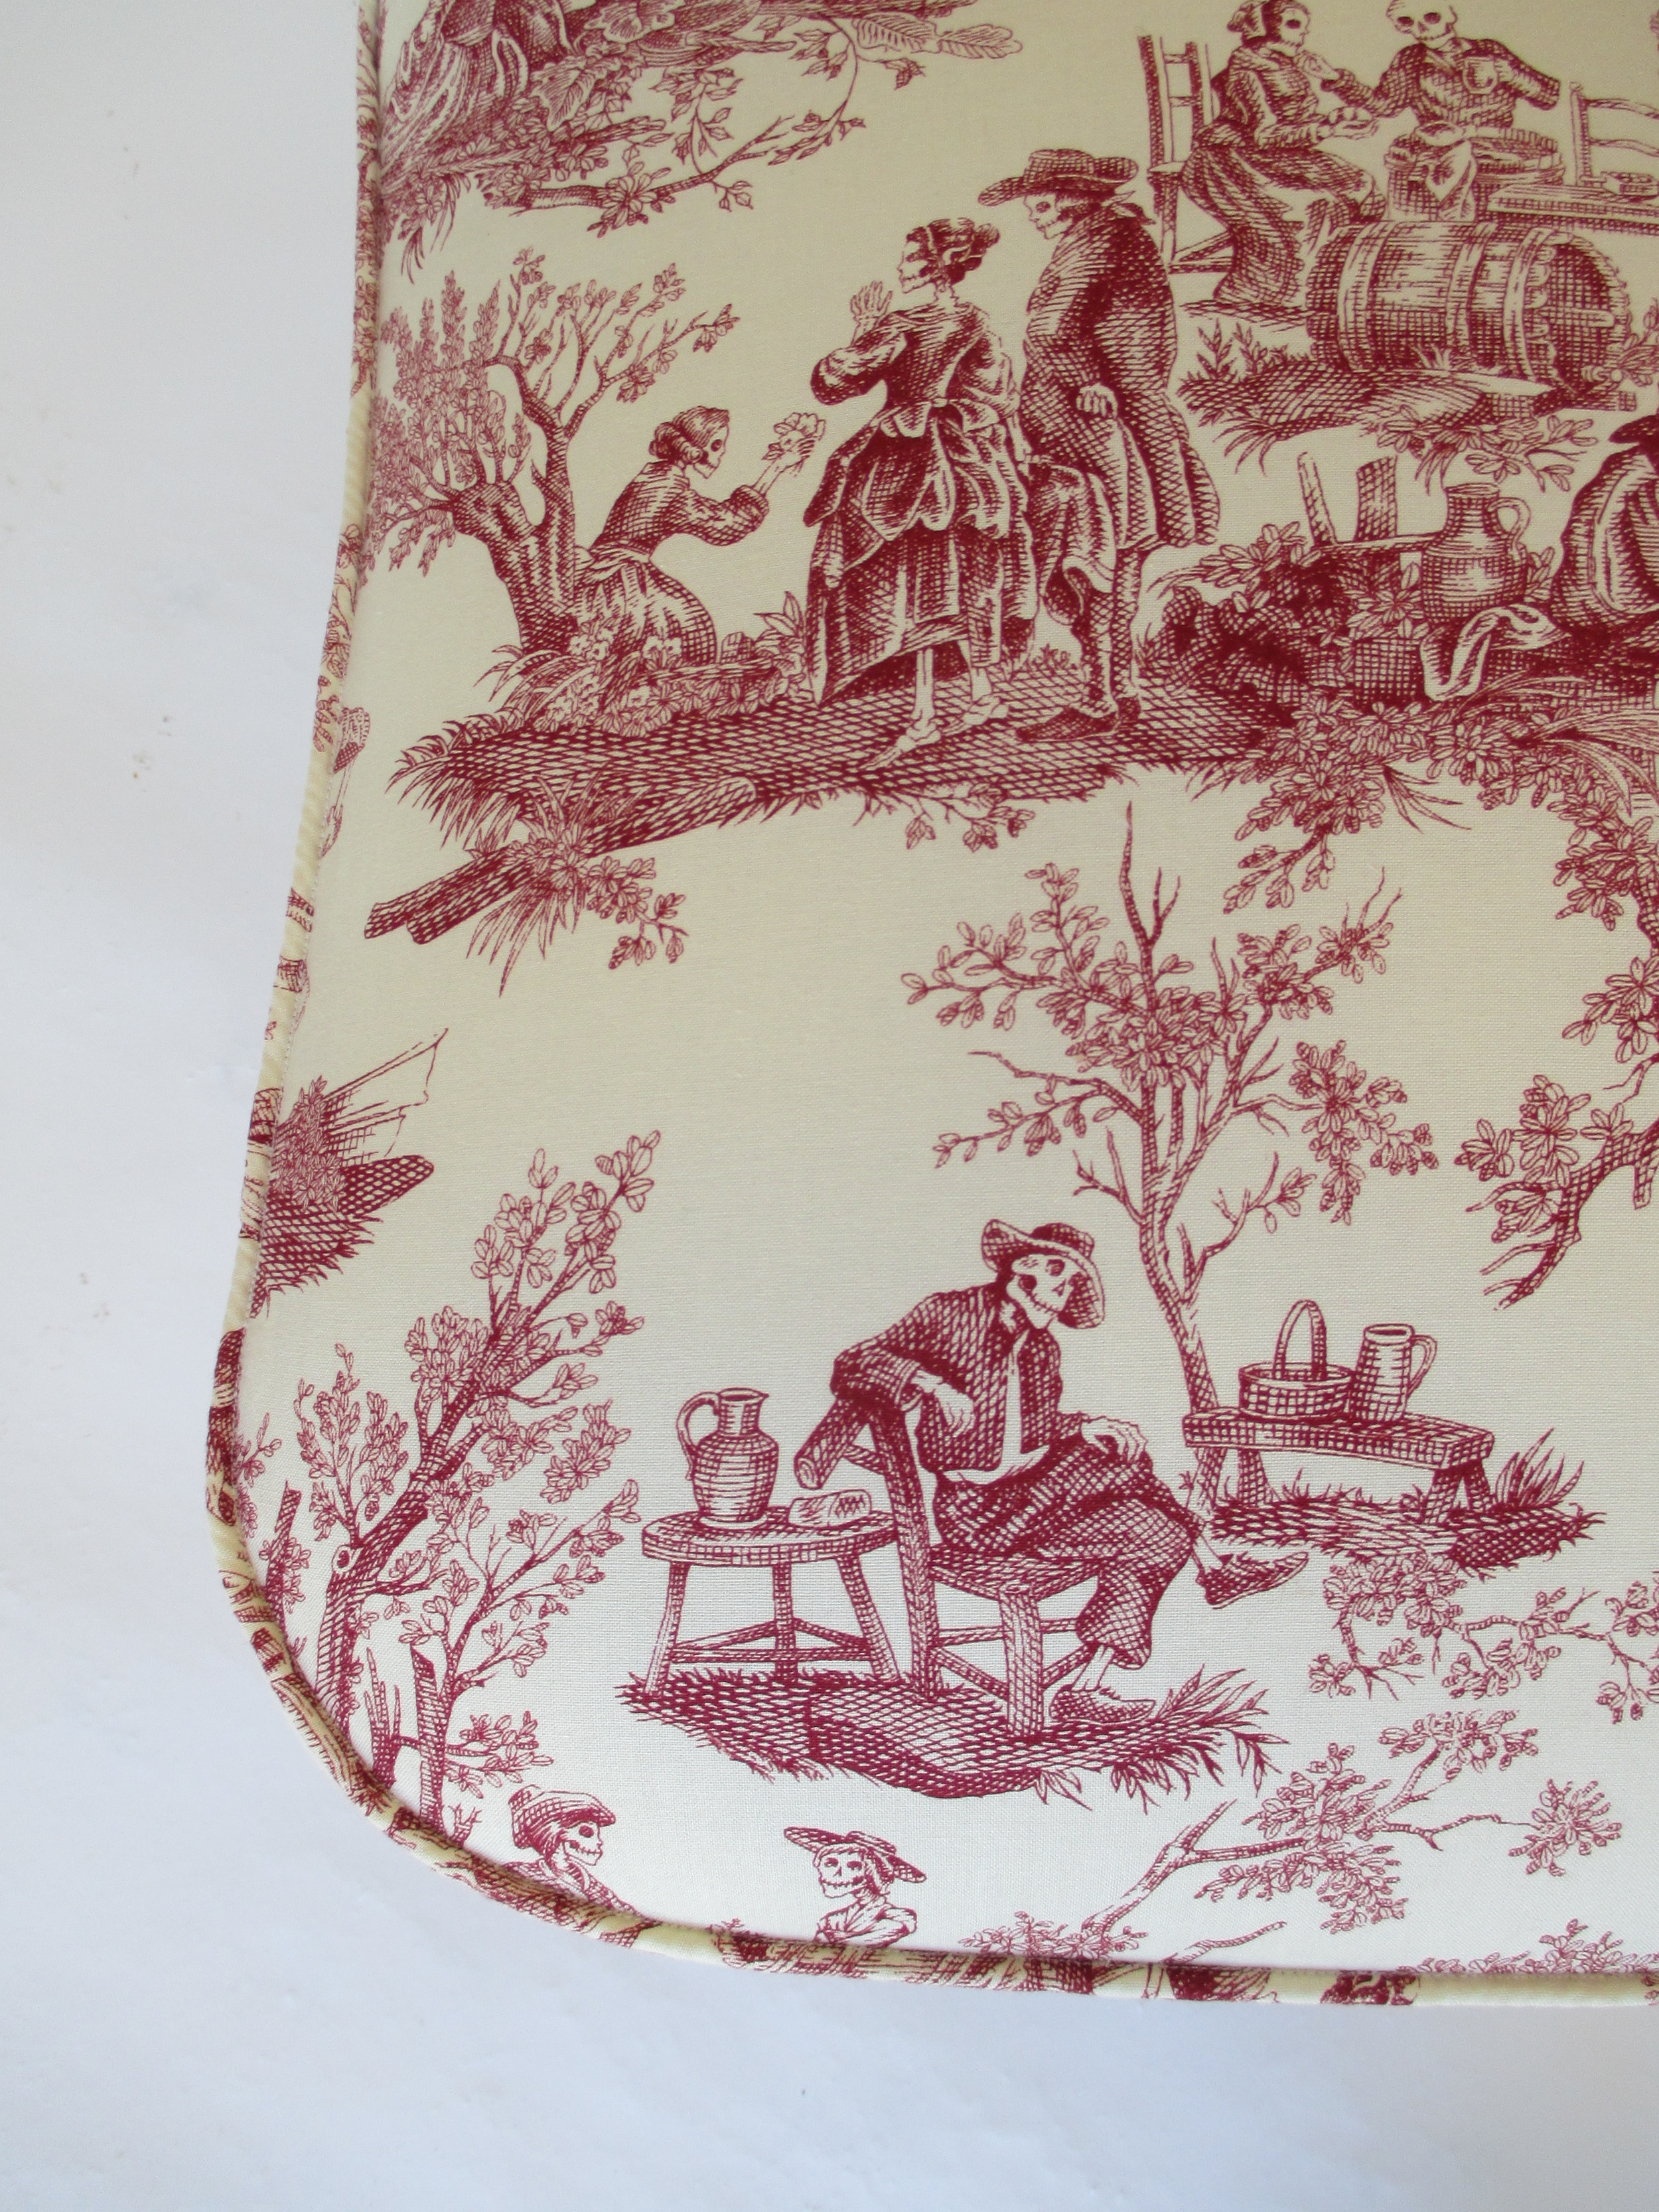 'Midnight Pastoral' by The Alexander Henry Fabric Collection